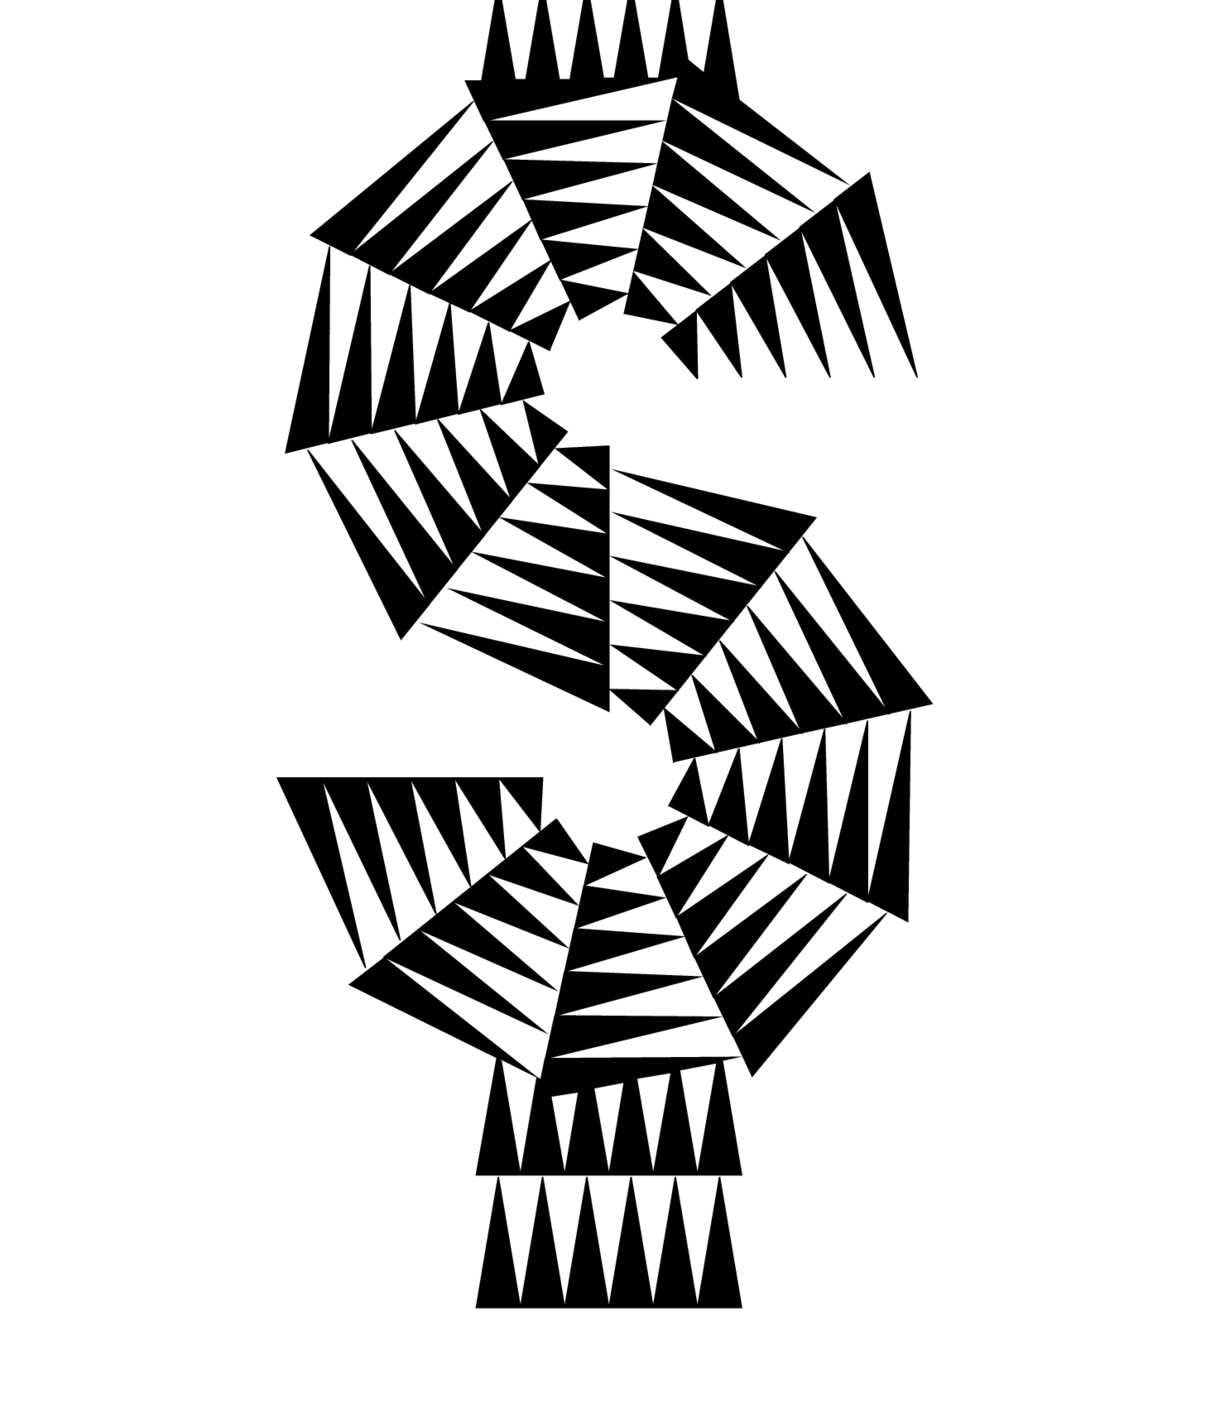 pattern-project-letters-37-1220x1407px